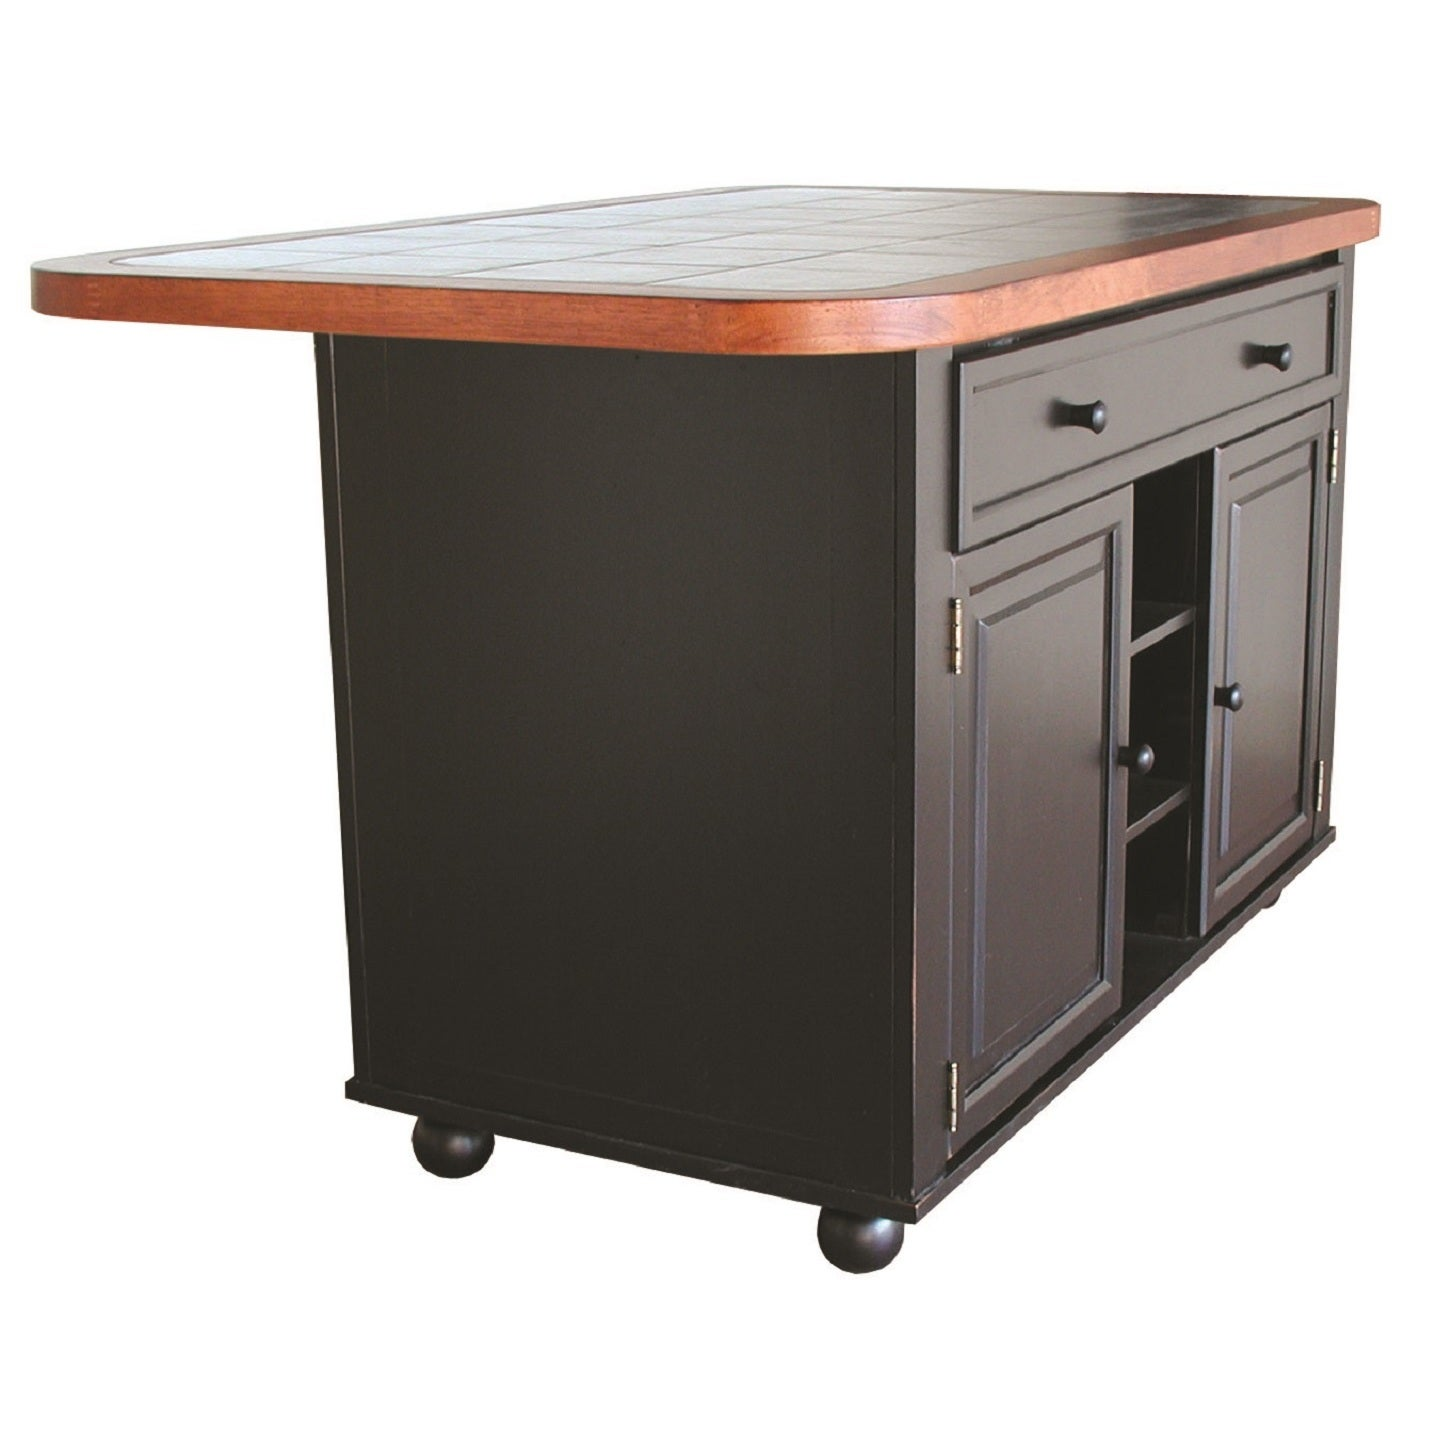 Charmant Gracewood Hollow Golden 3 Ft. X 5 Ft. Kitchen Island In 3 Finishes